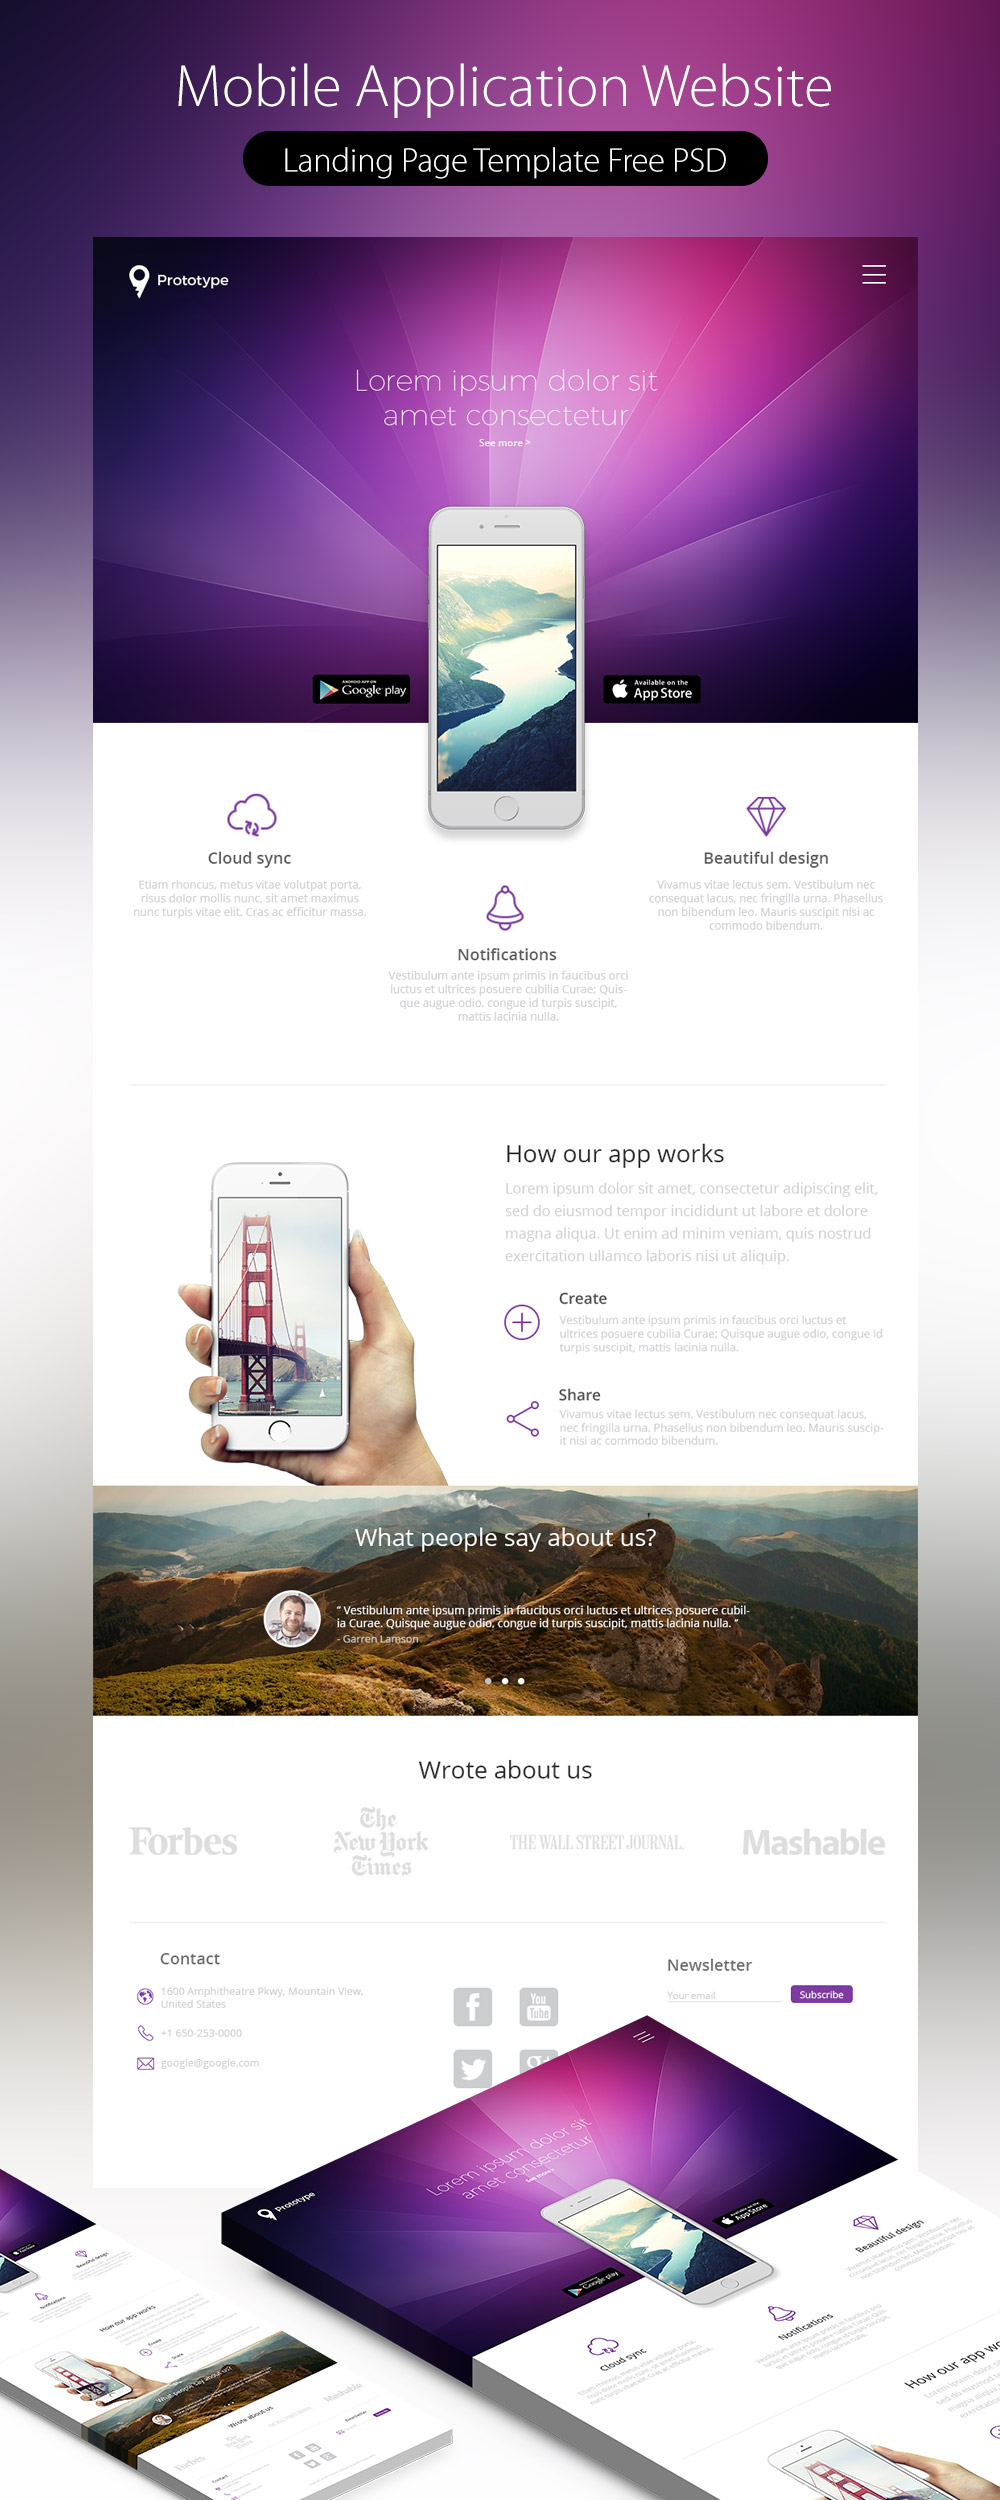 Mobile app design psd free download images